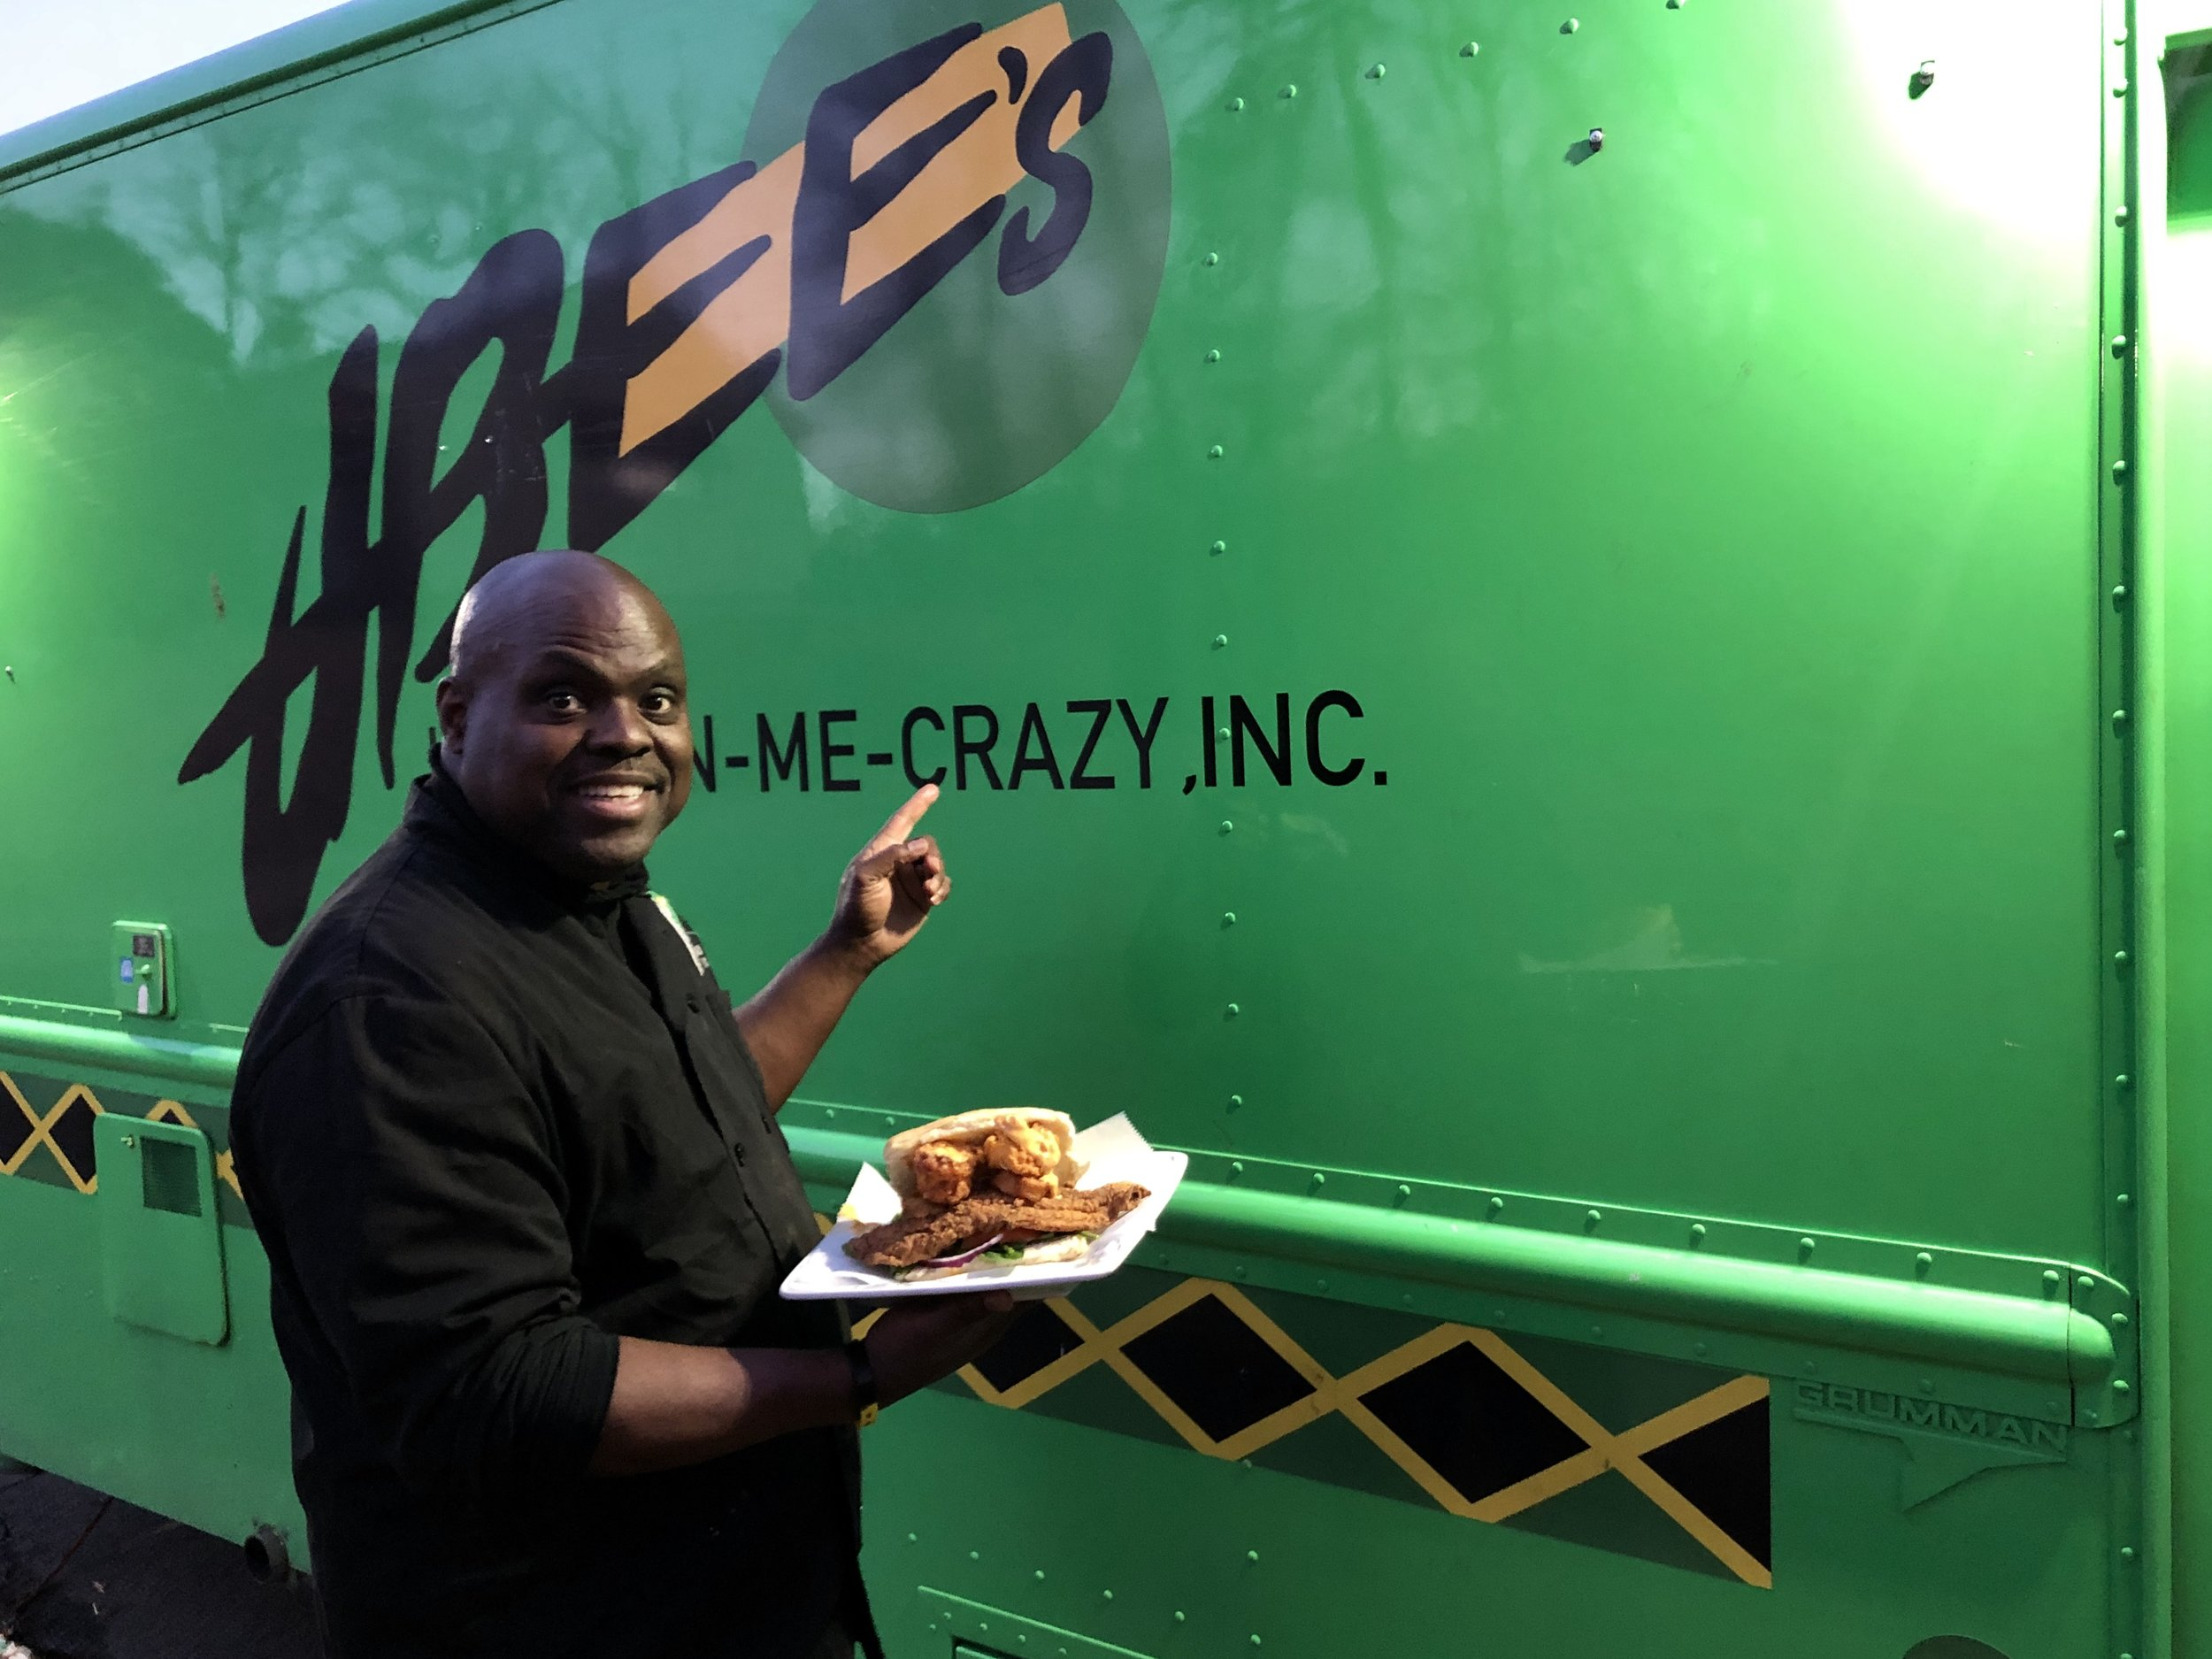 Jbees Jamaican-Me-Crazy, Inc